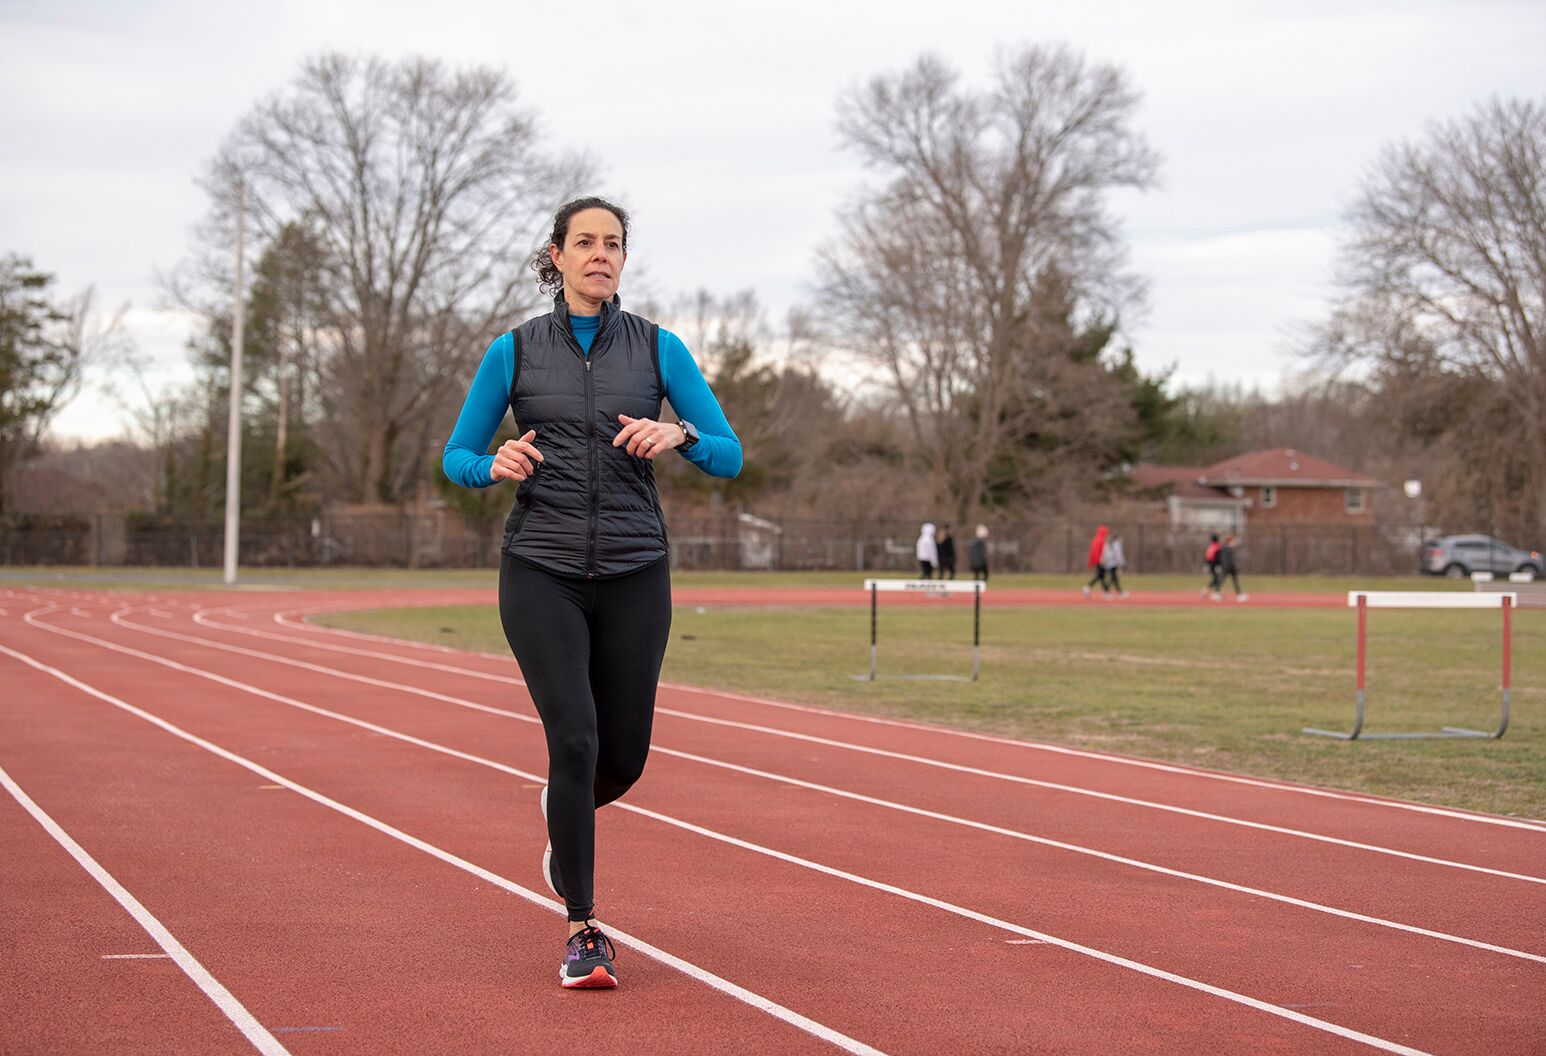 A middle-aged woman running the track